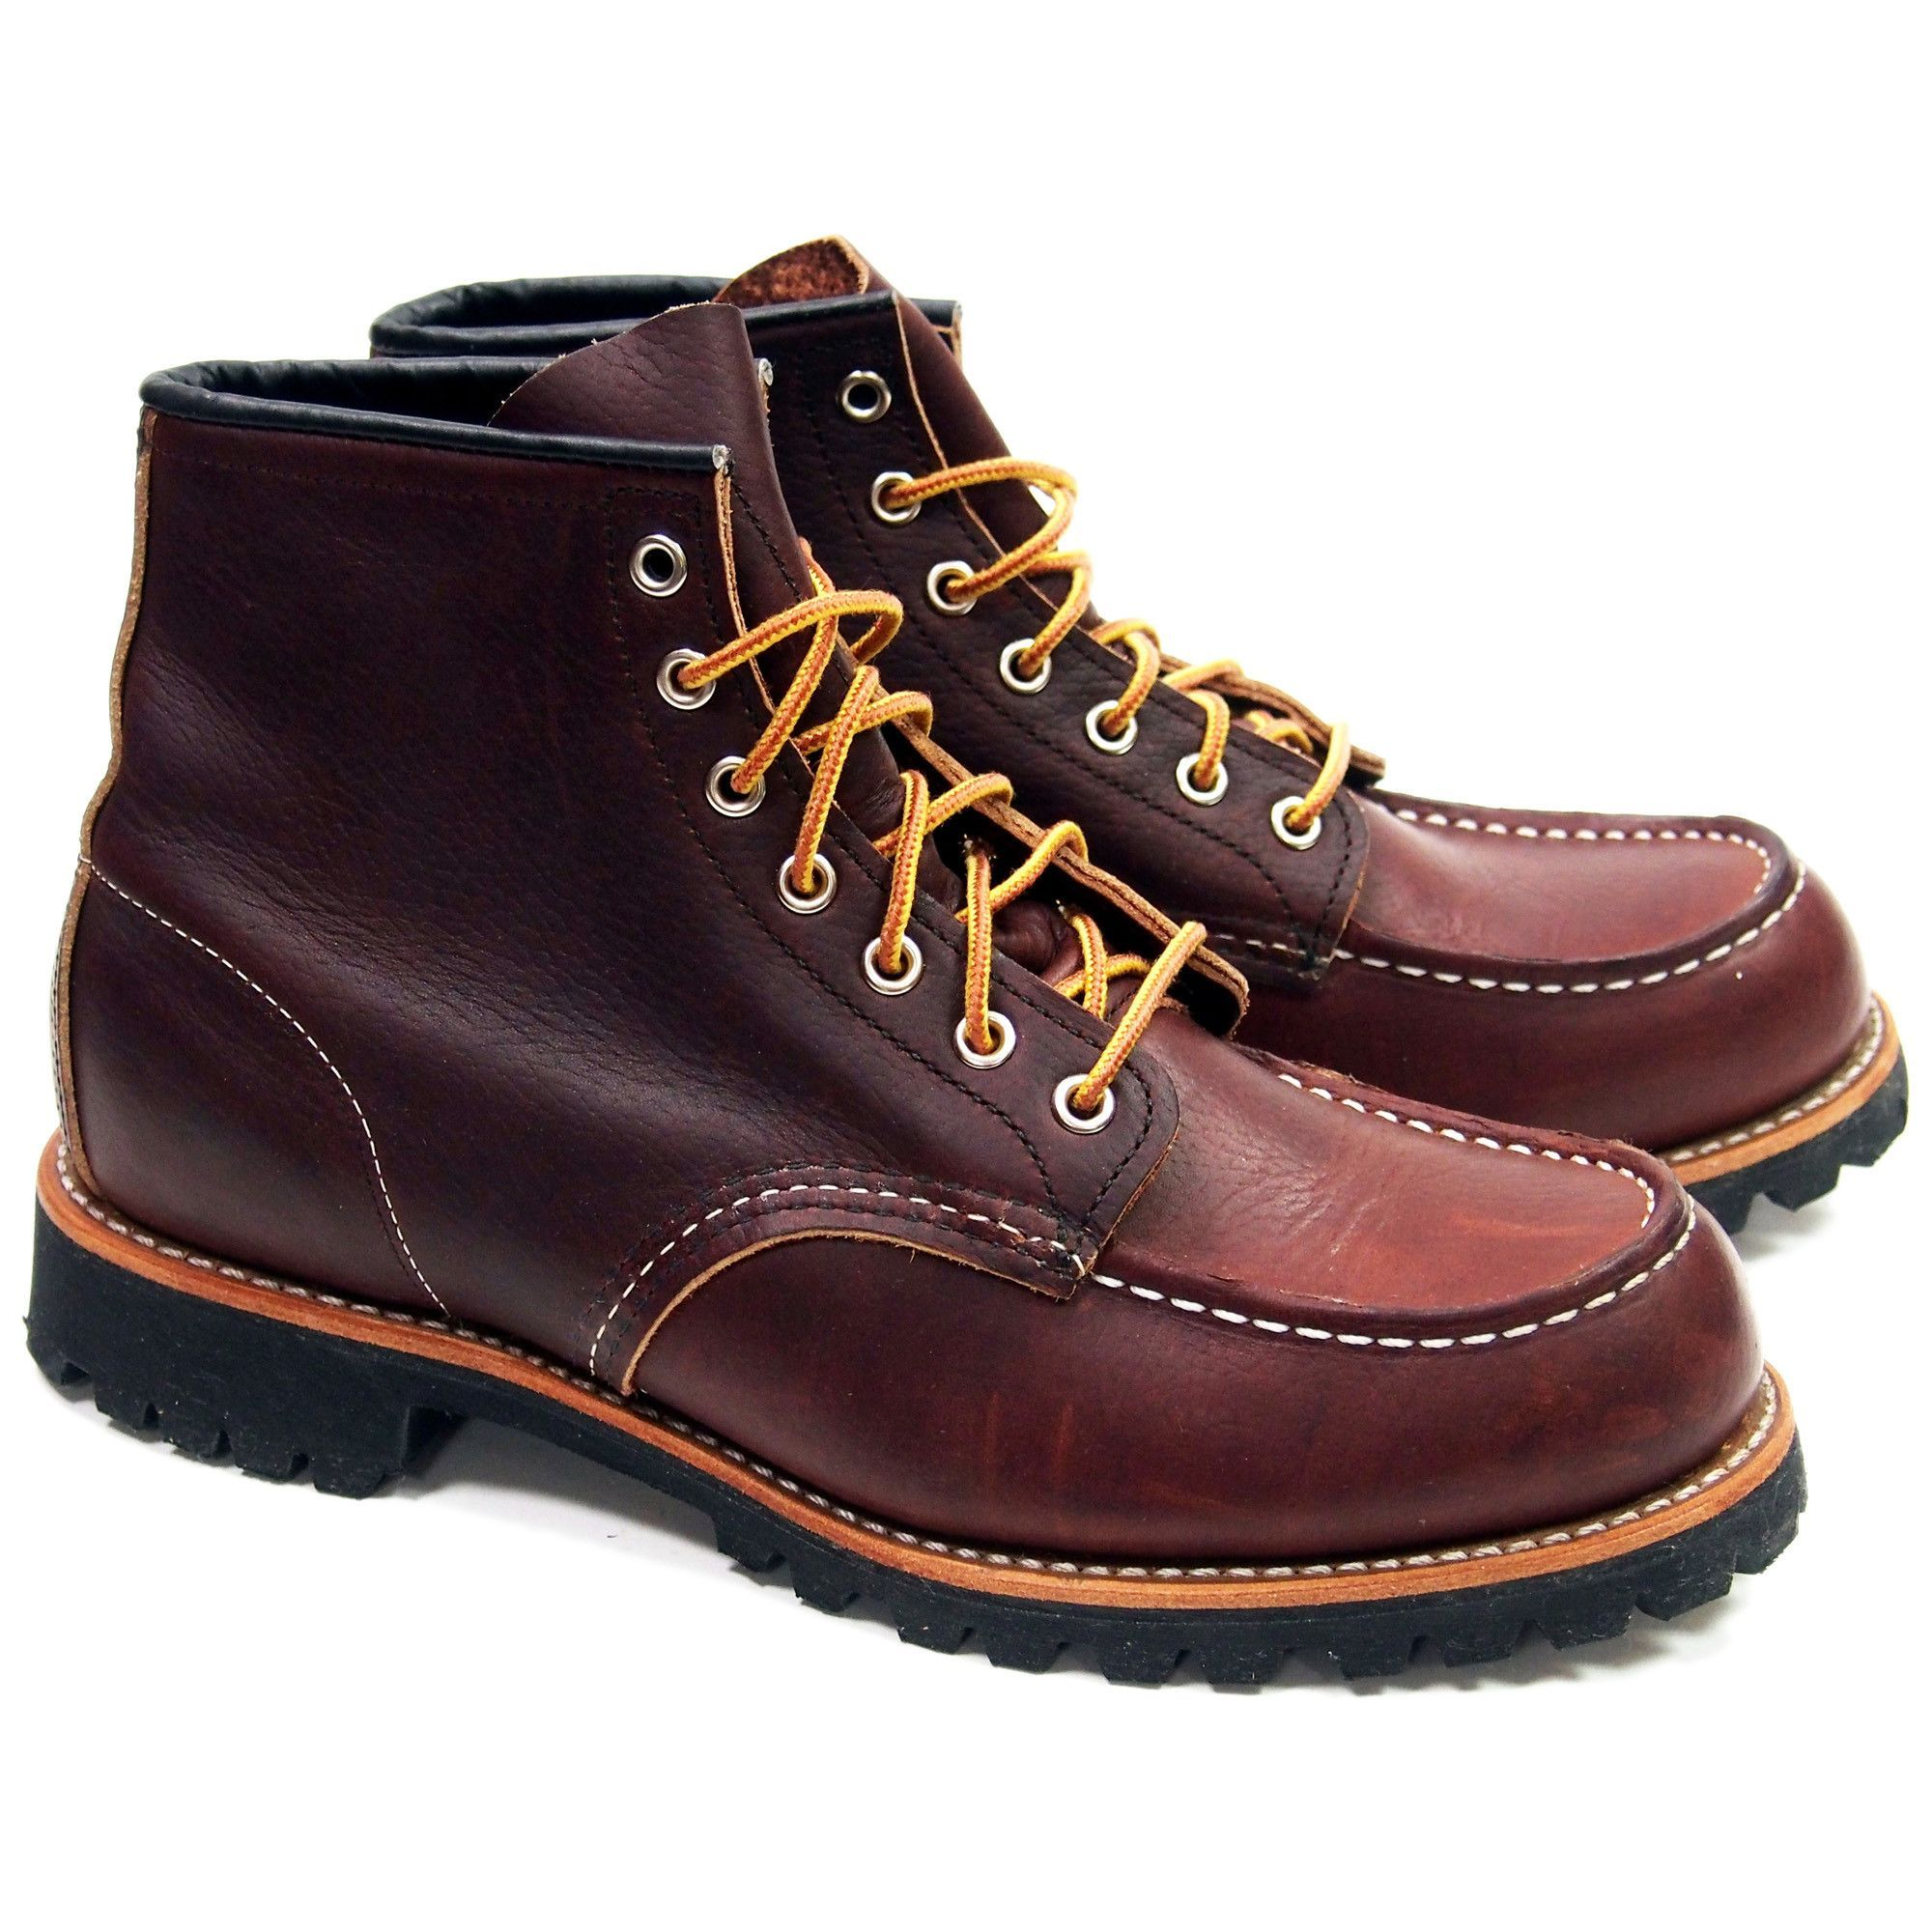 091b218004f Red Wing Heritage Moc Toe Boots 8146 | Just my style in 2019 | Shoes ...